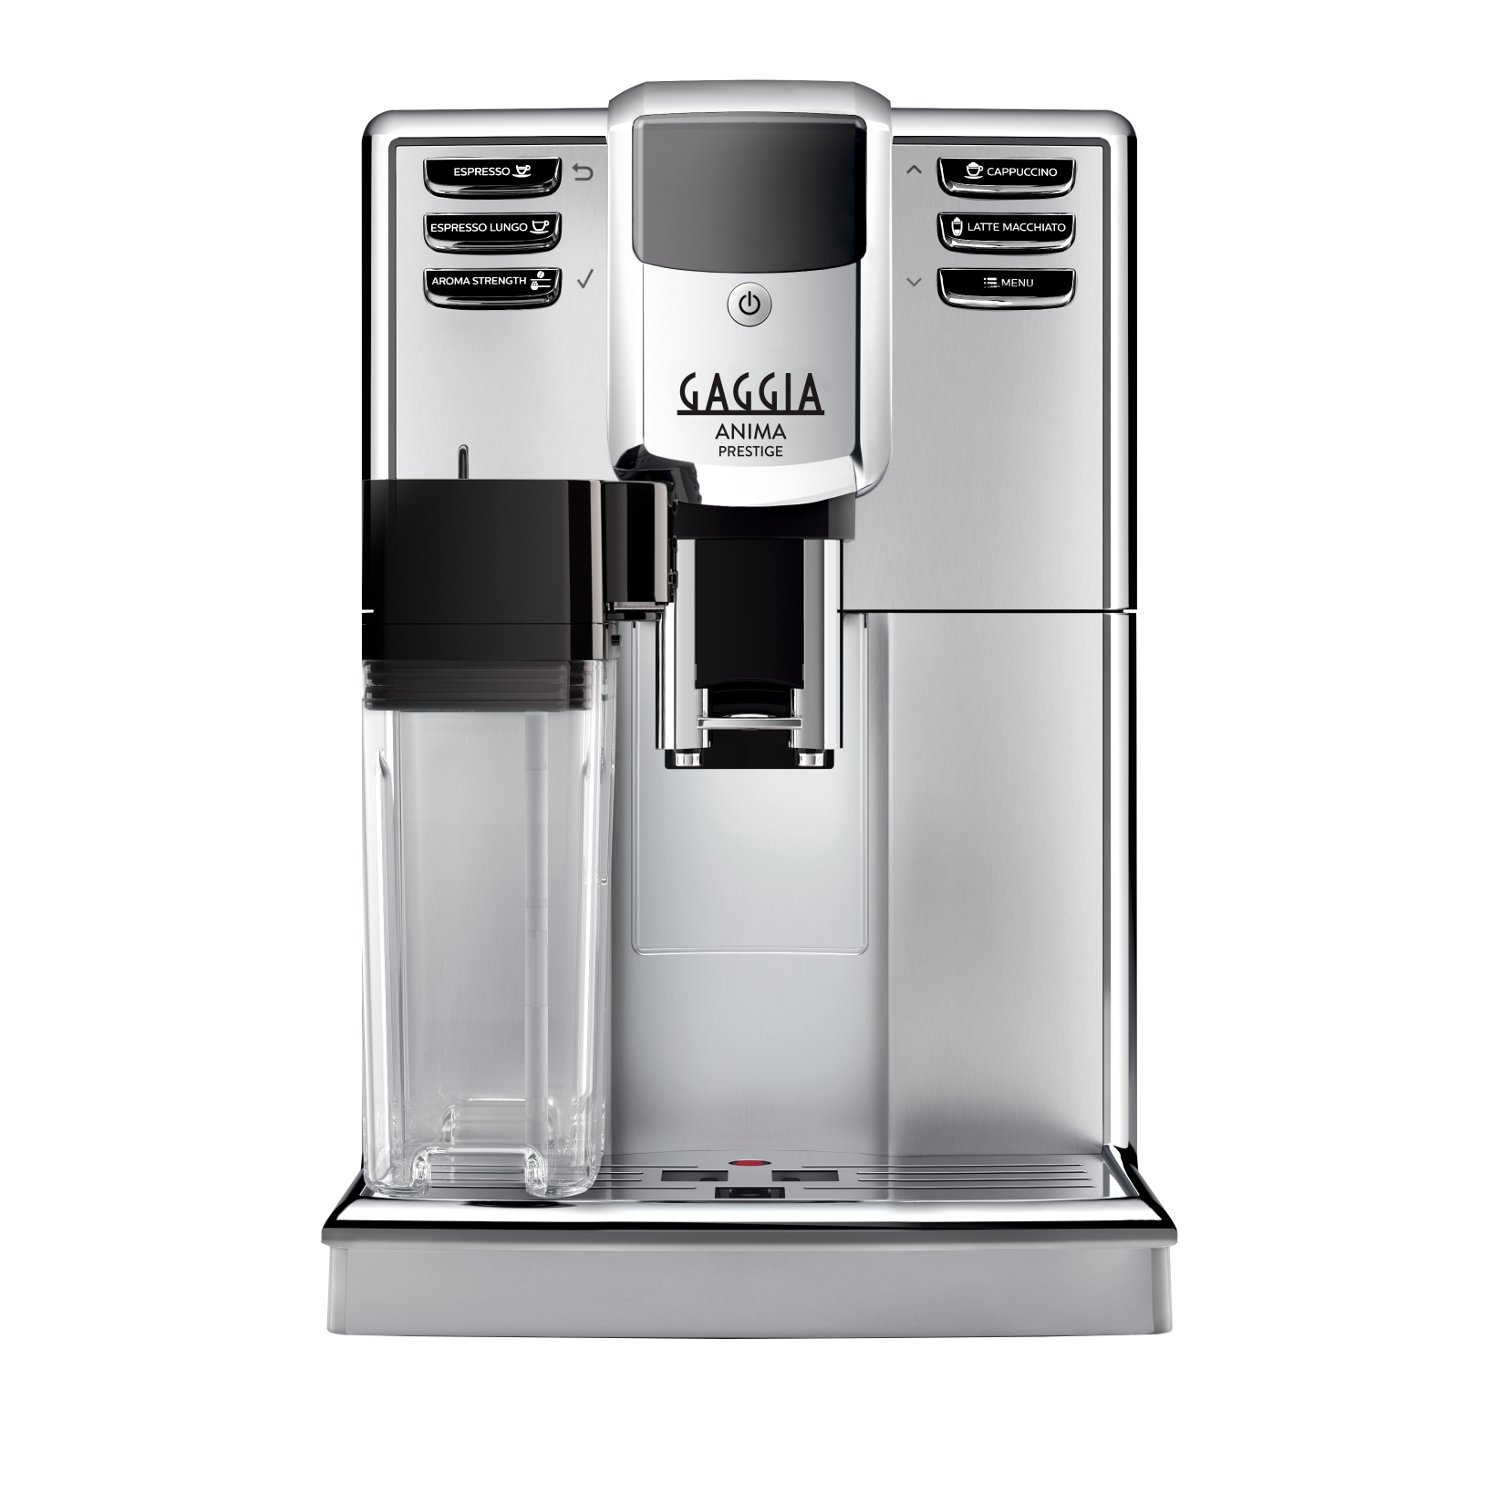 Gaggia RI8762 Anima Prestige Espresso Machine (View on Amazon)